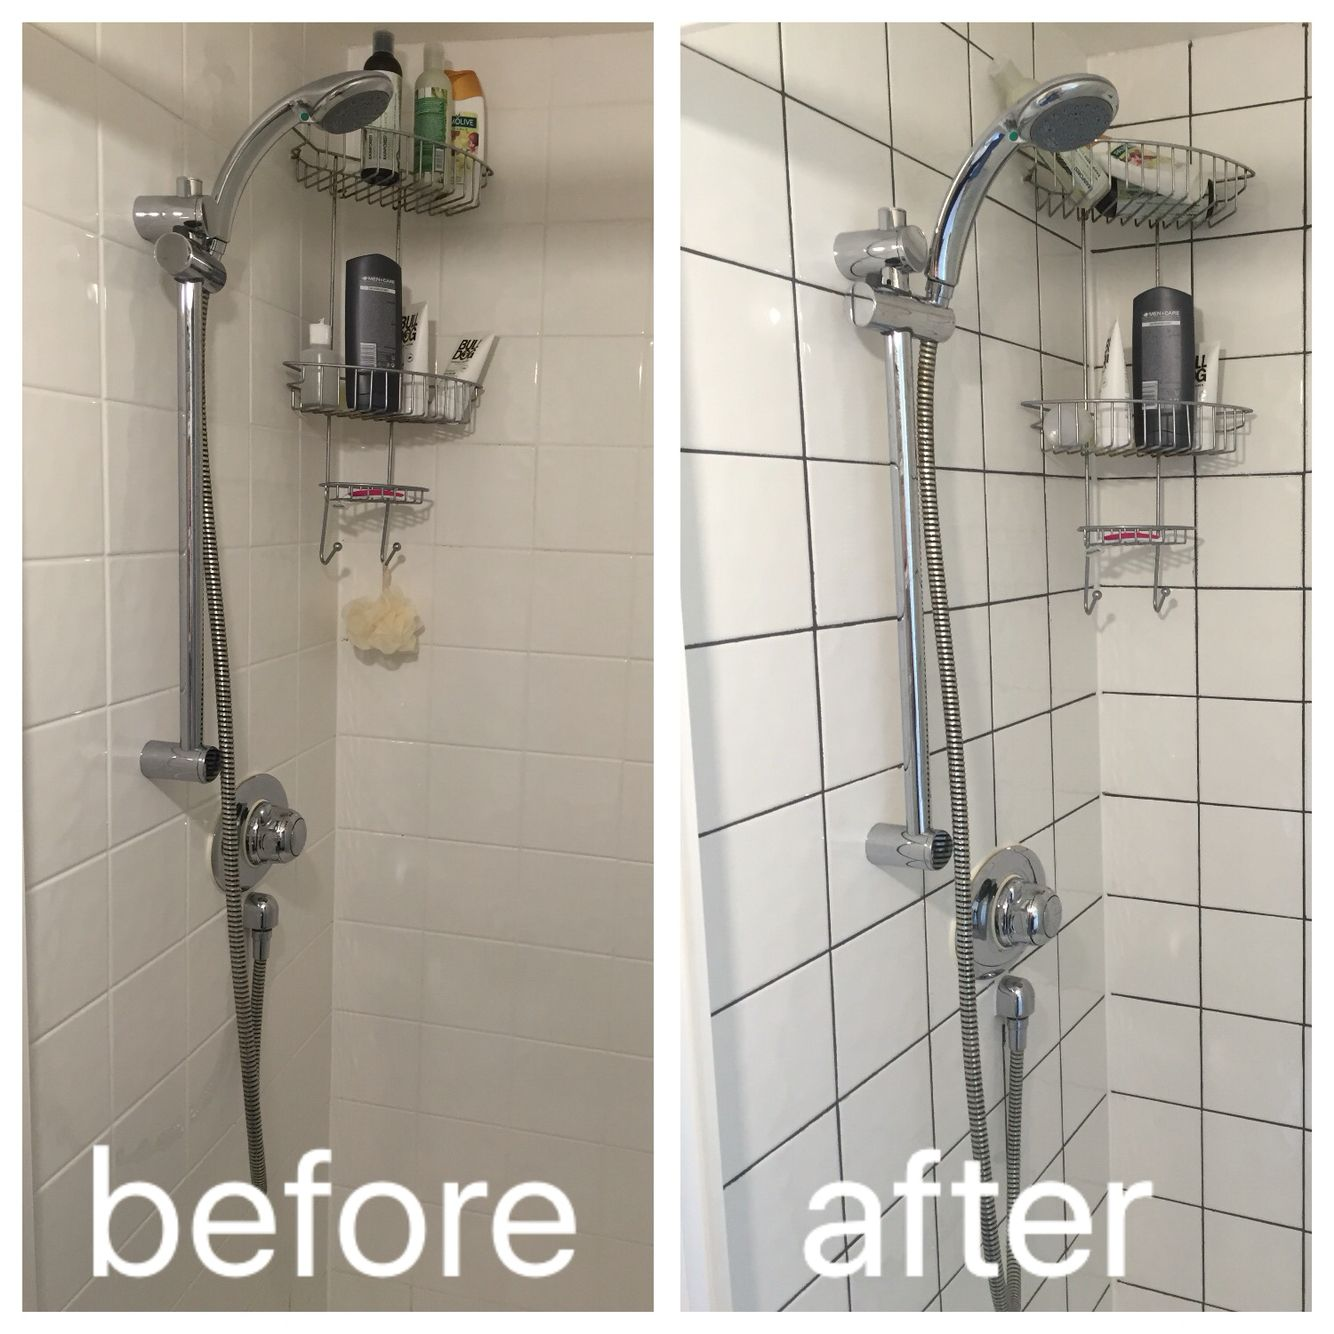 how to regrout bathroom tiles regrouting with grey grout to modernise a boring 23460 | 4c4c84eaa33c6ff95db2335e1e23d76d